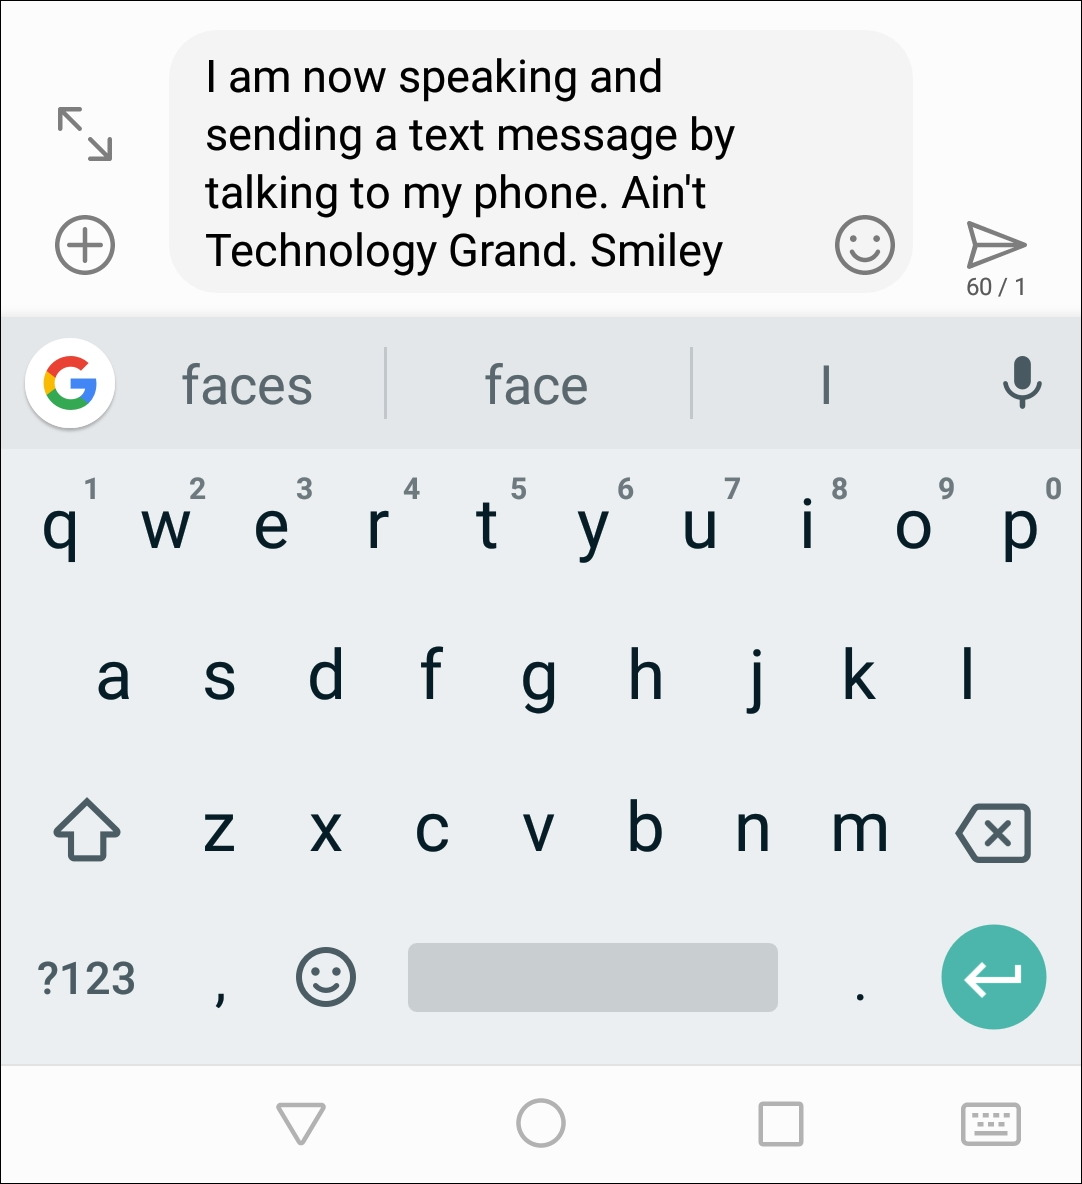 dictation android can't understand smiley